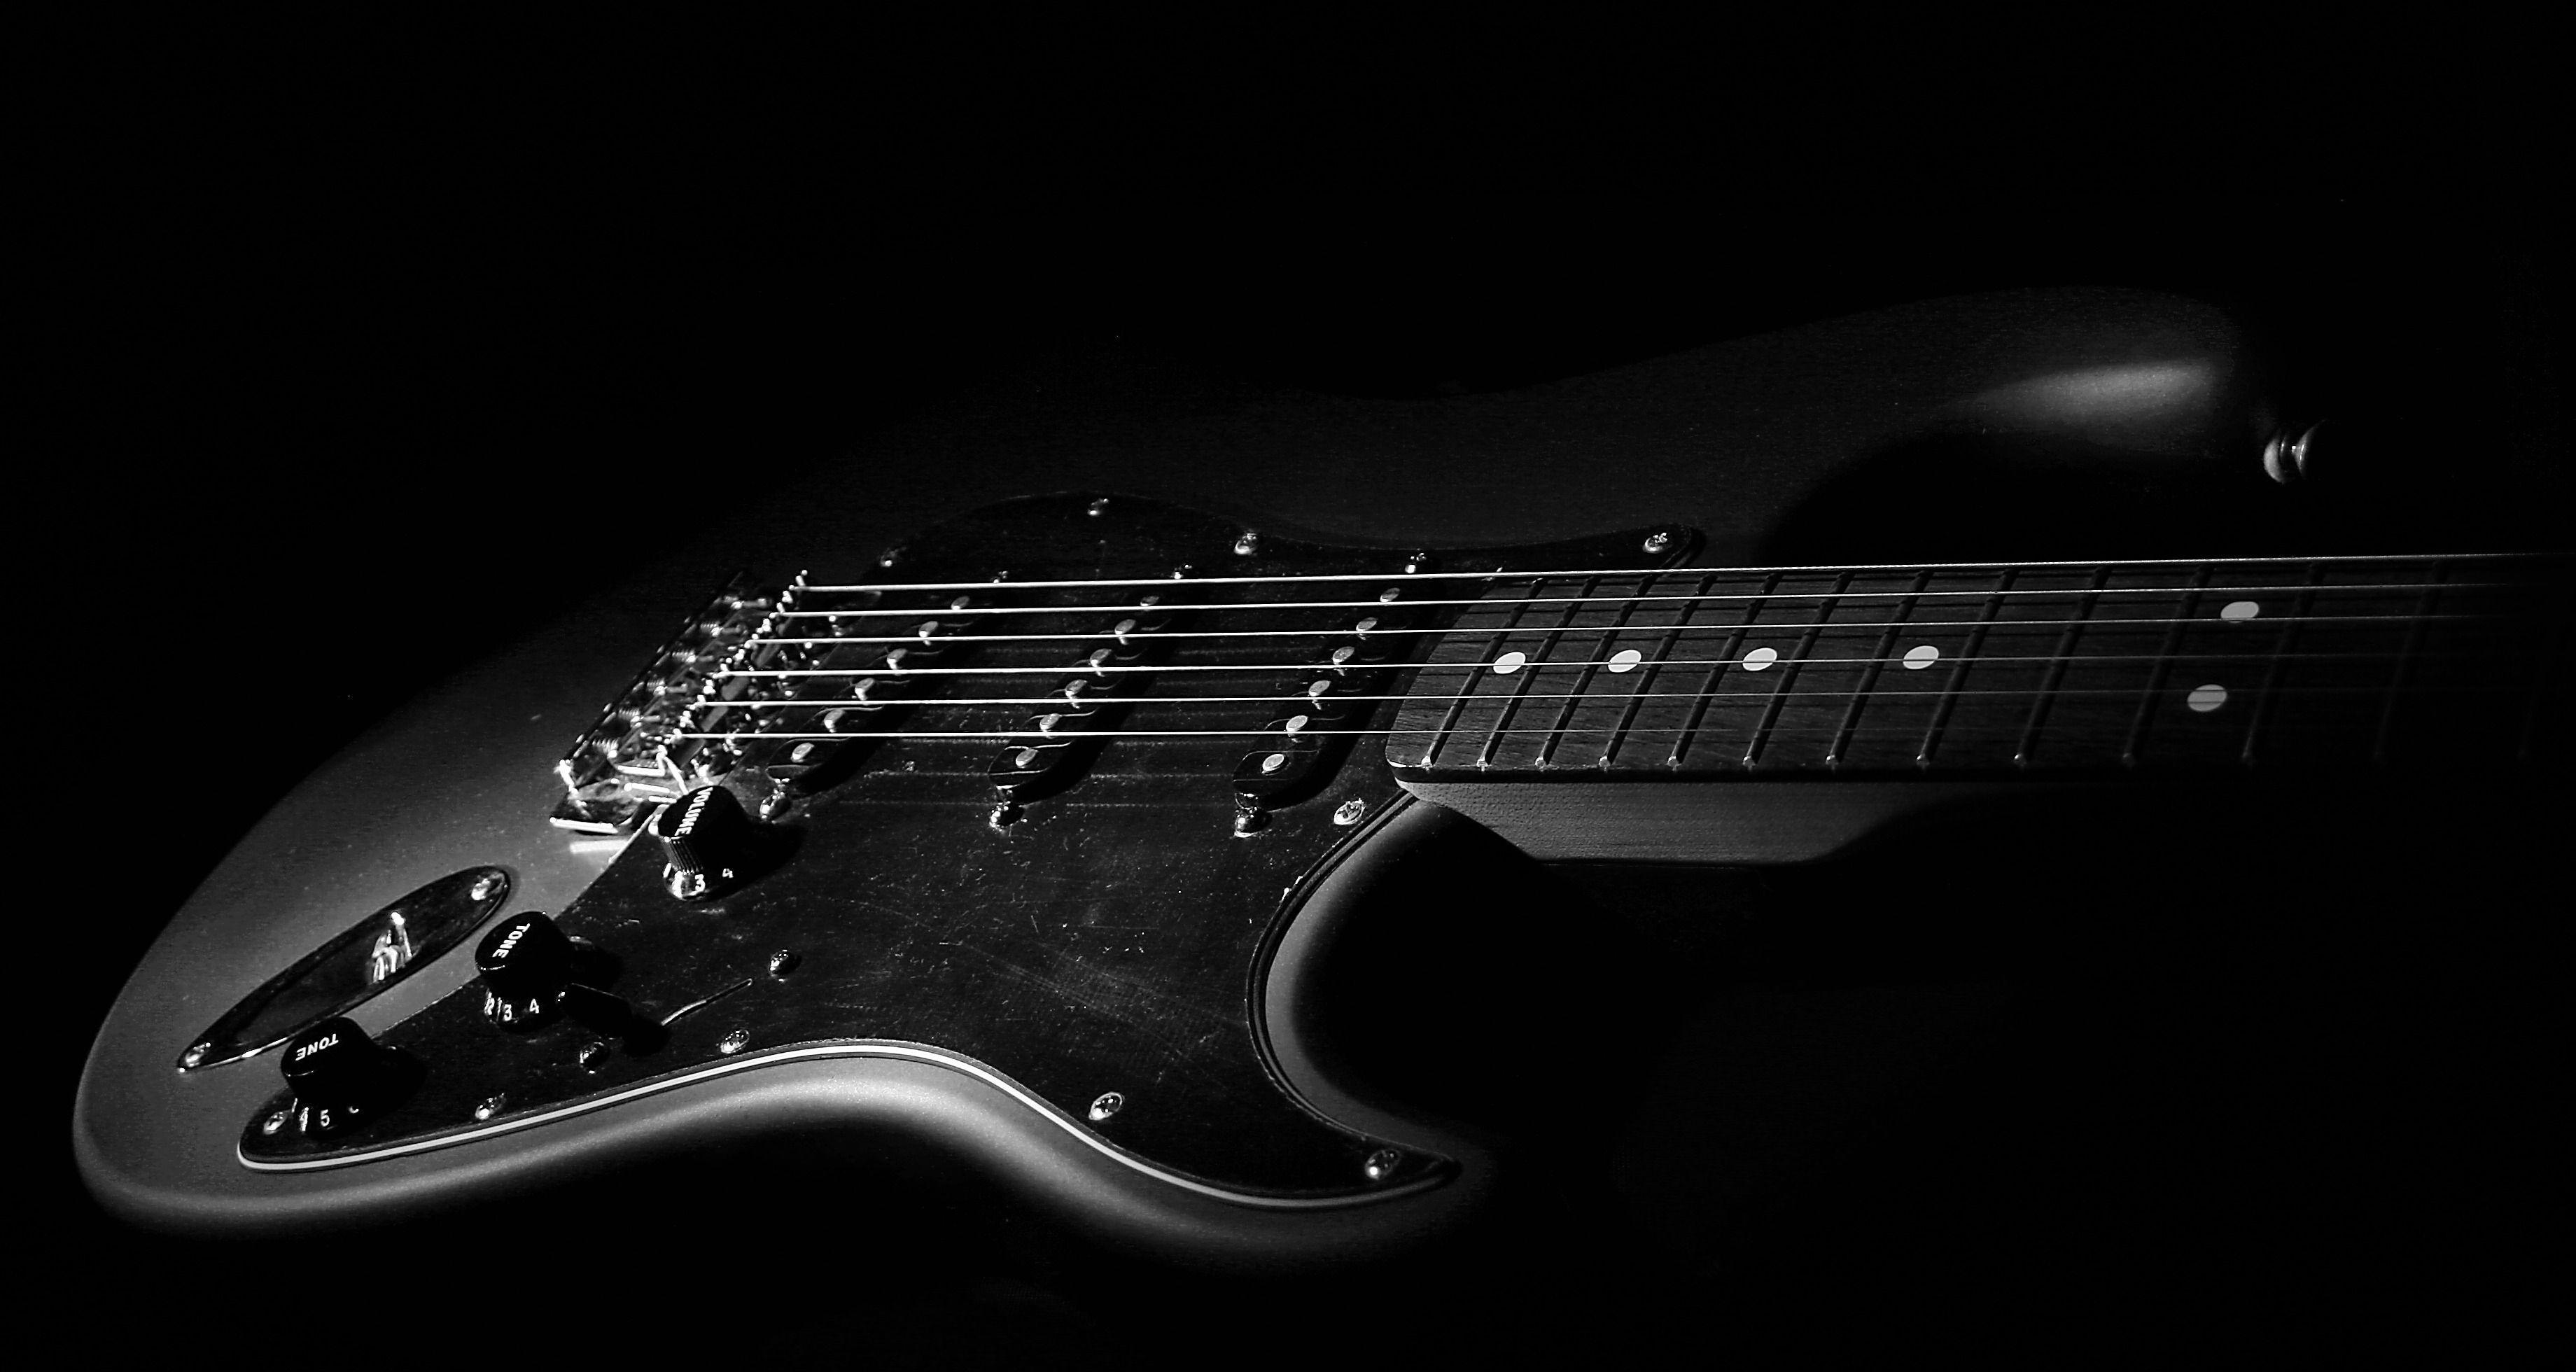 Fender stratocaster wallpapers wallpaper cave - Fender wallpaper ...